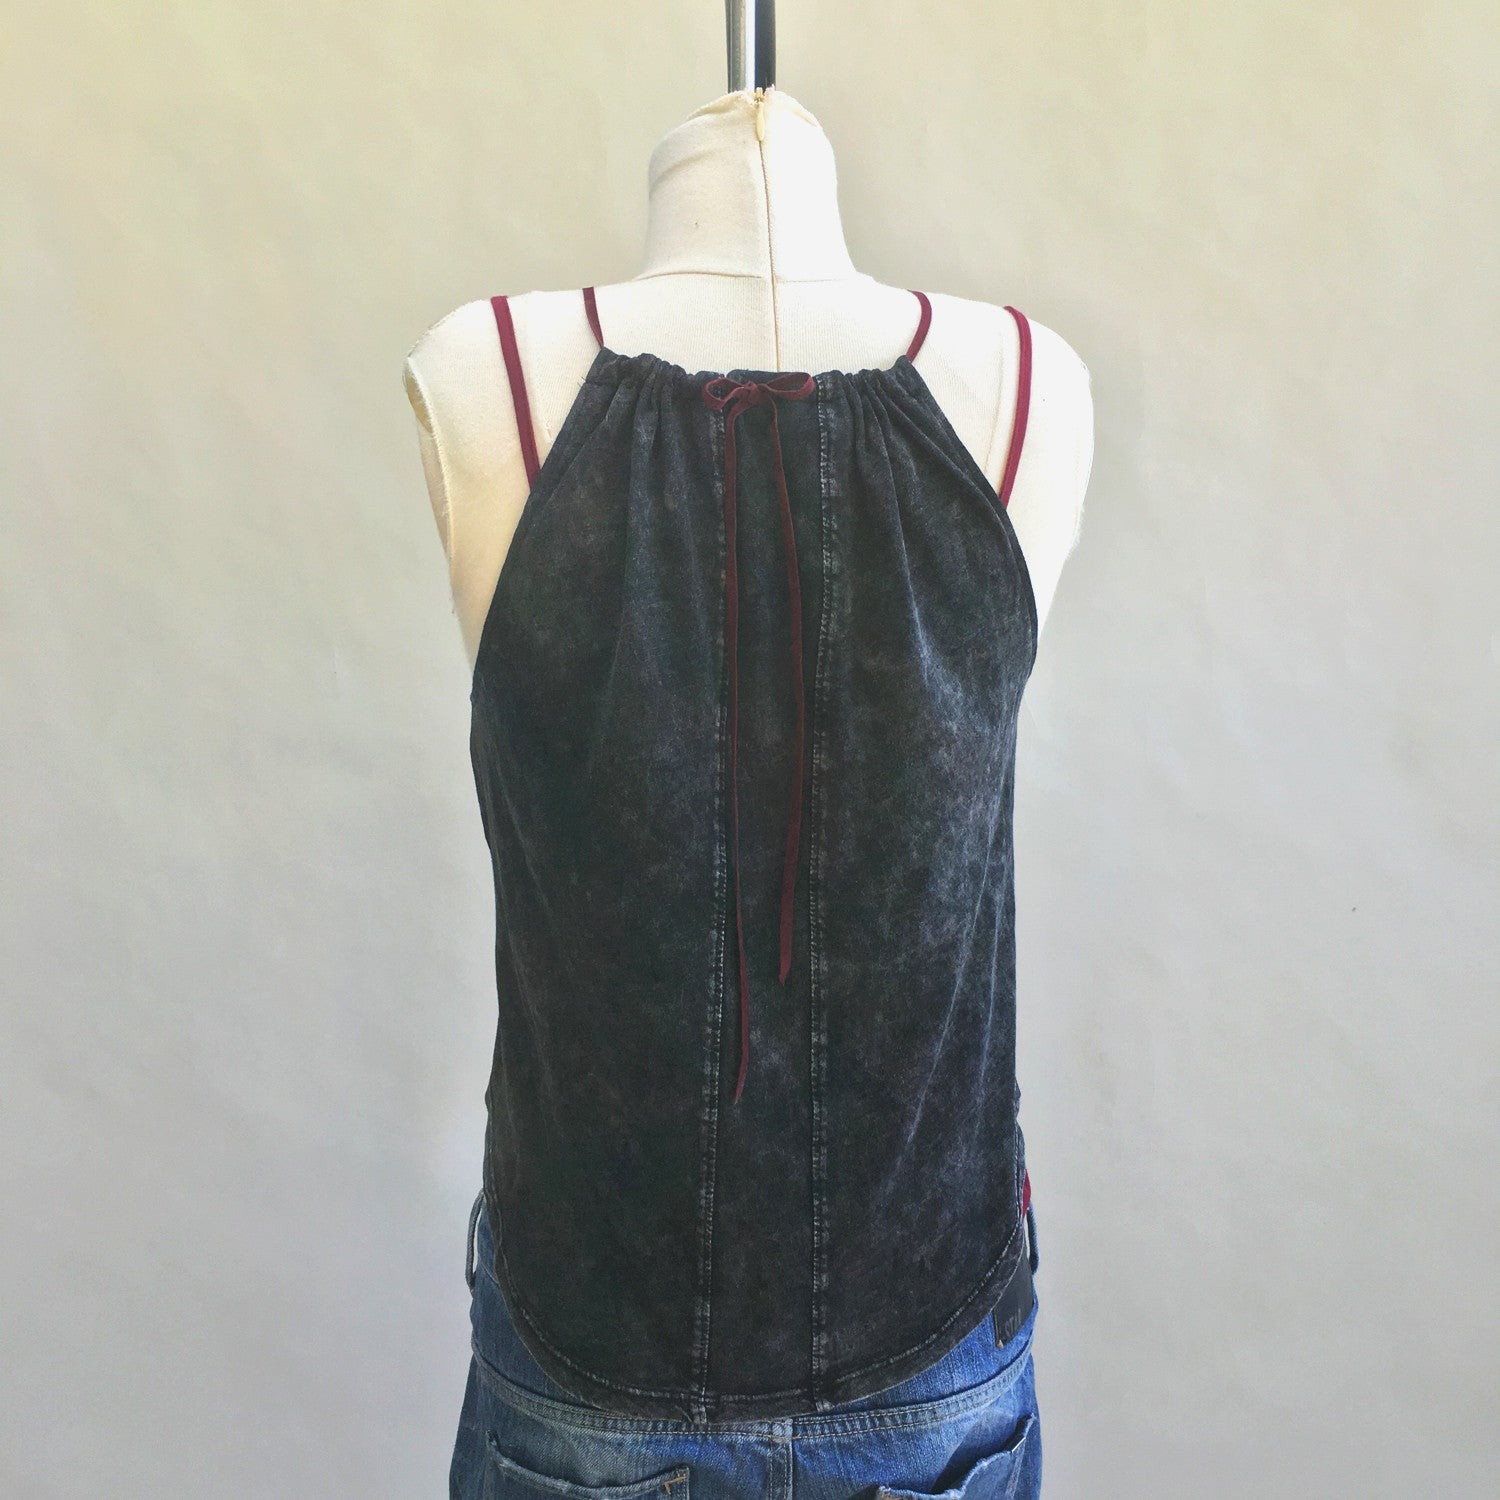 Guns N' Roses Sleeveless Top